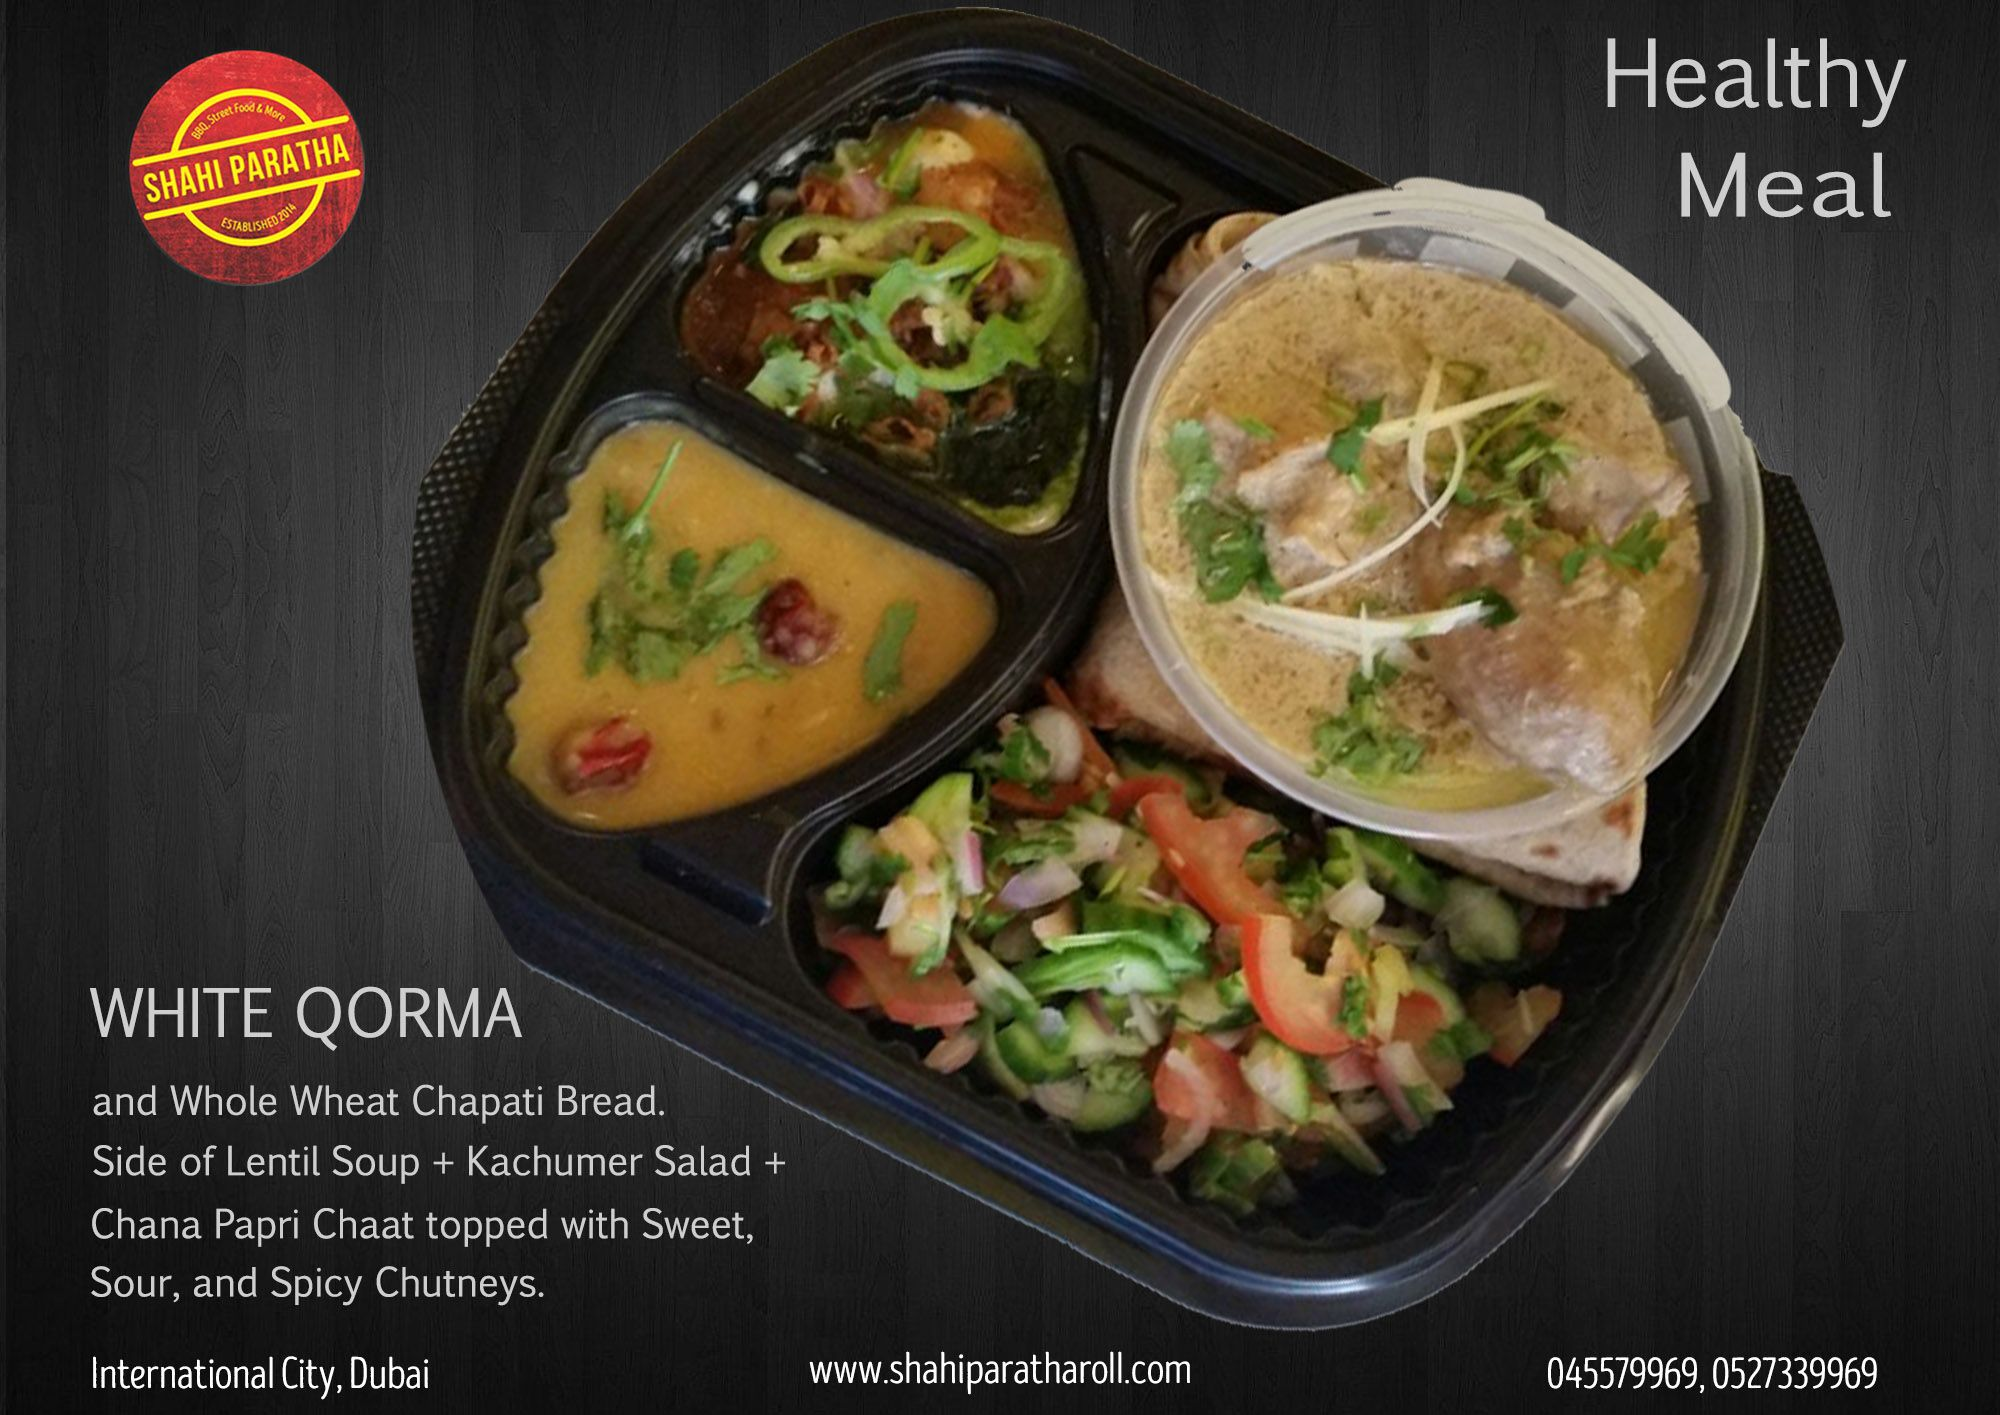 Delivery Near Me Restaurants That Deliver Near Me Food Delivery Service Http Www Shahiparatharoll Com Healthy Recipes Healthy Food Delivery Food